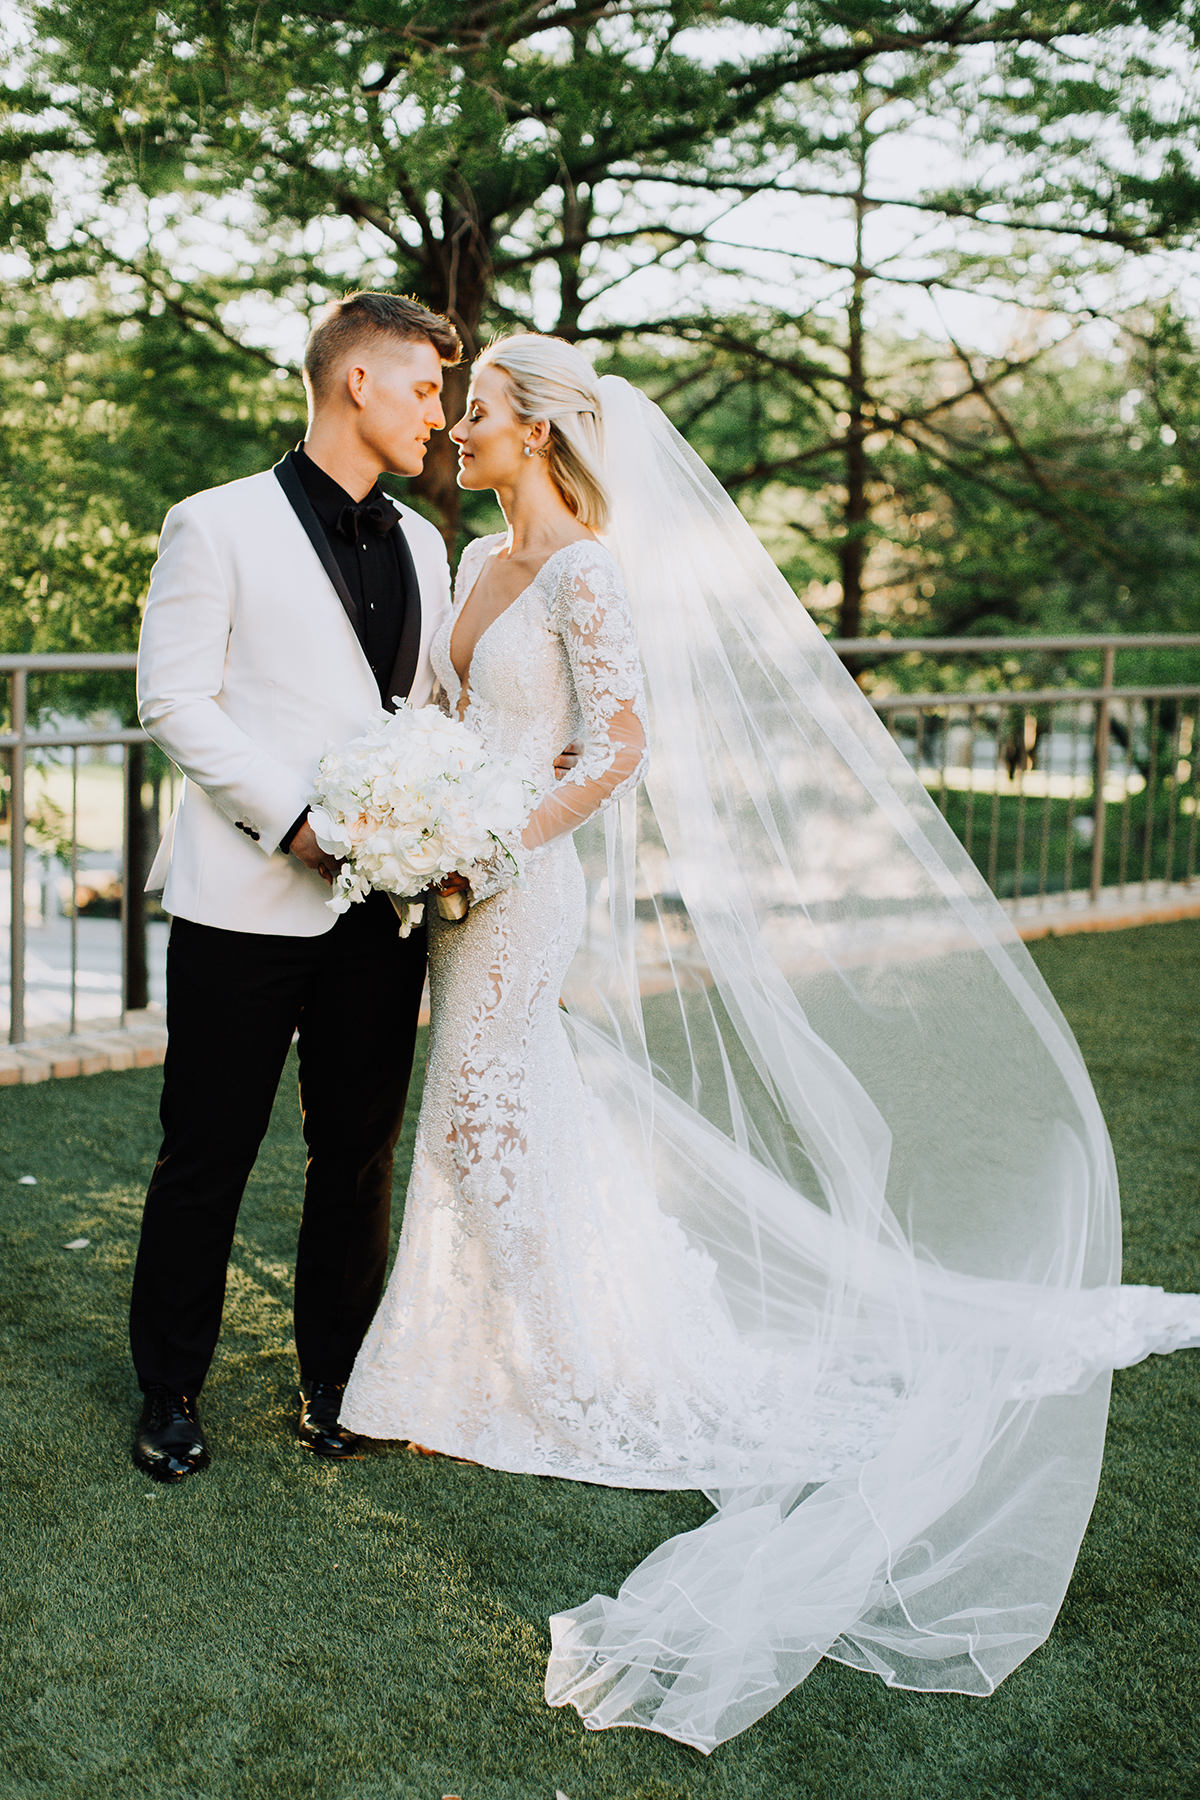 long sleeve wedding dress with low back and long veil from bridal boutique